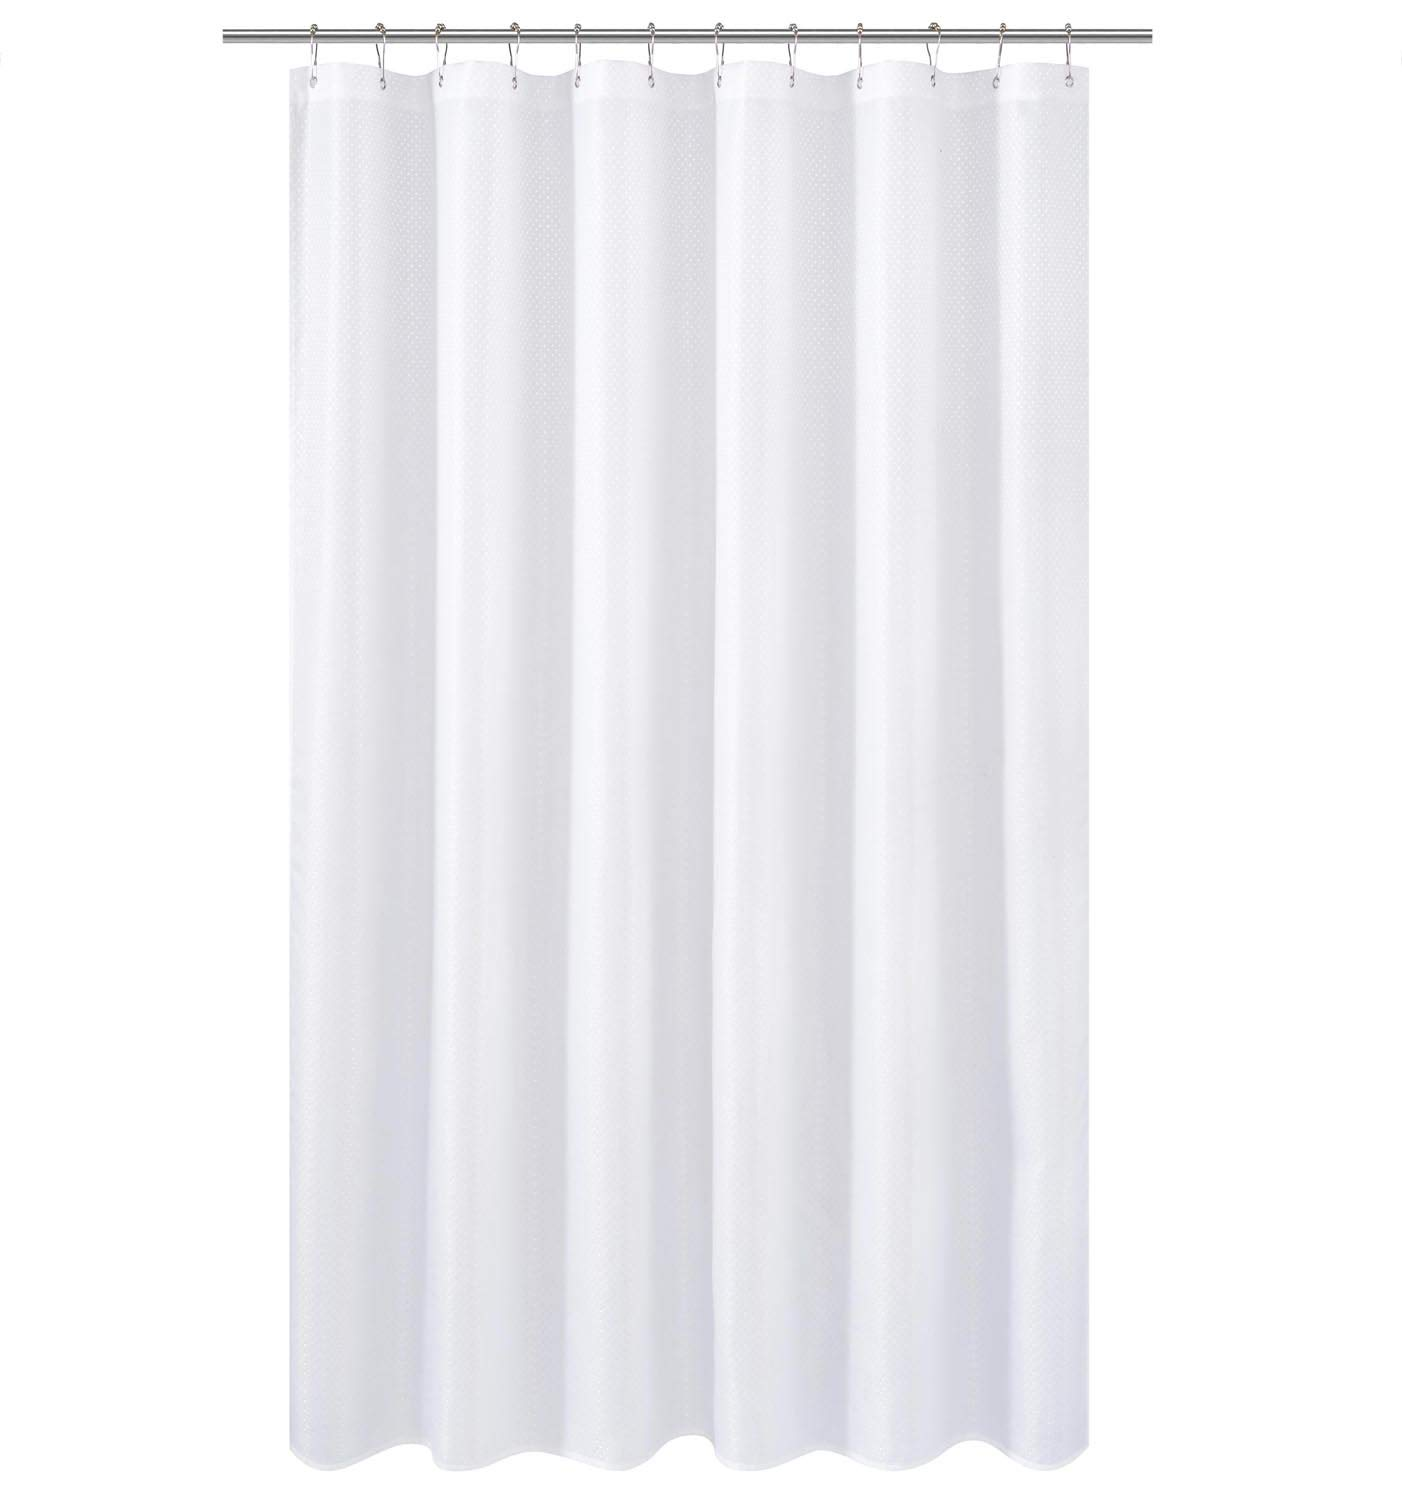 N&Y HOME Long Fabric Shower Curtain Liner or Shower Curtain 78 inches Height, Hotel Quality, Washable, Water Repellent, Diamond Patterned White Bathroom Curtains with Grommets